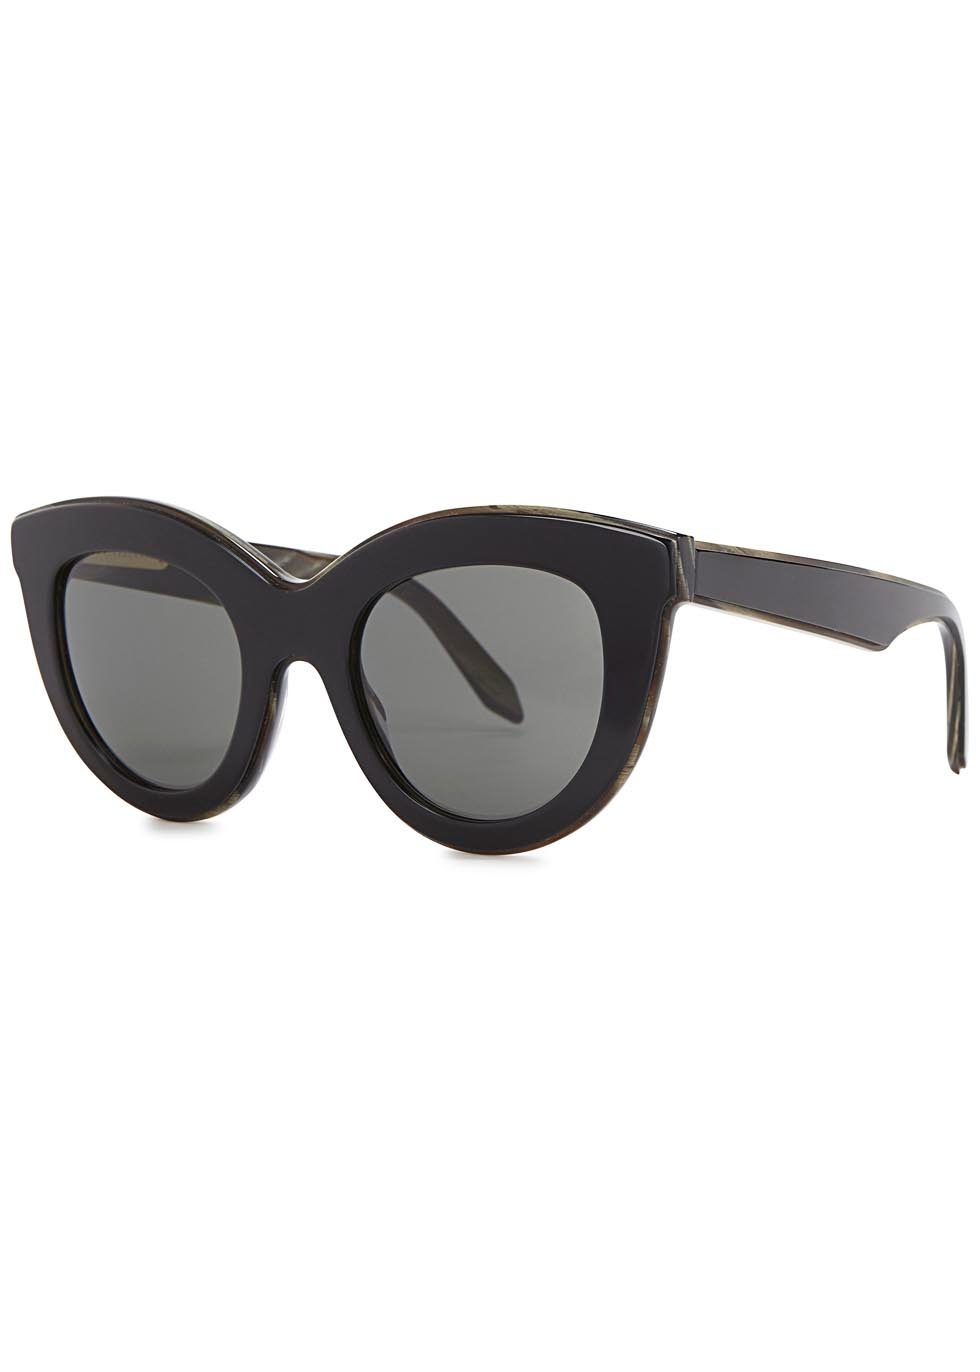 Layered Cat black cat-eye sunglasses - Victoria Beckham